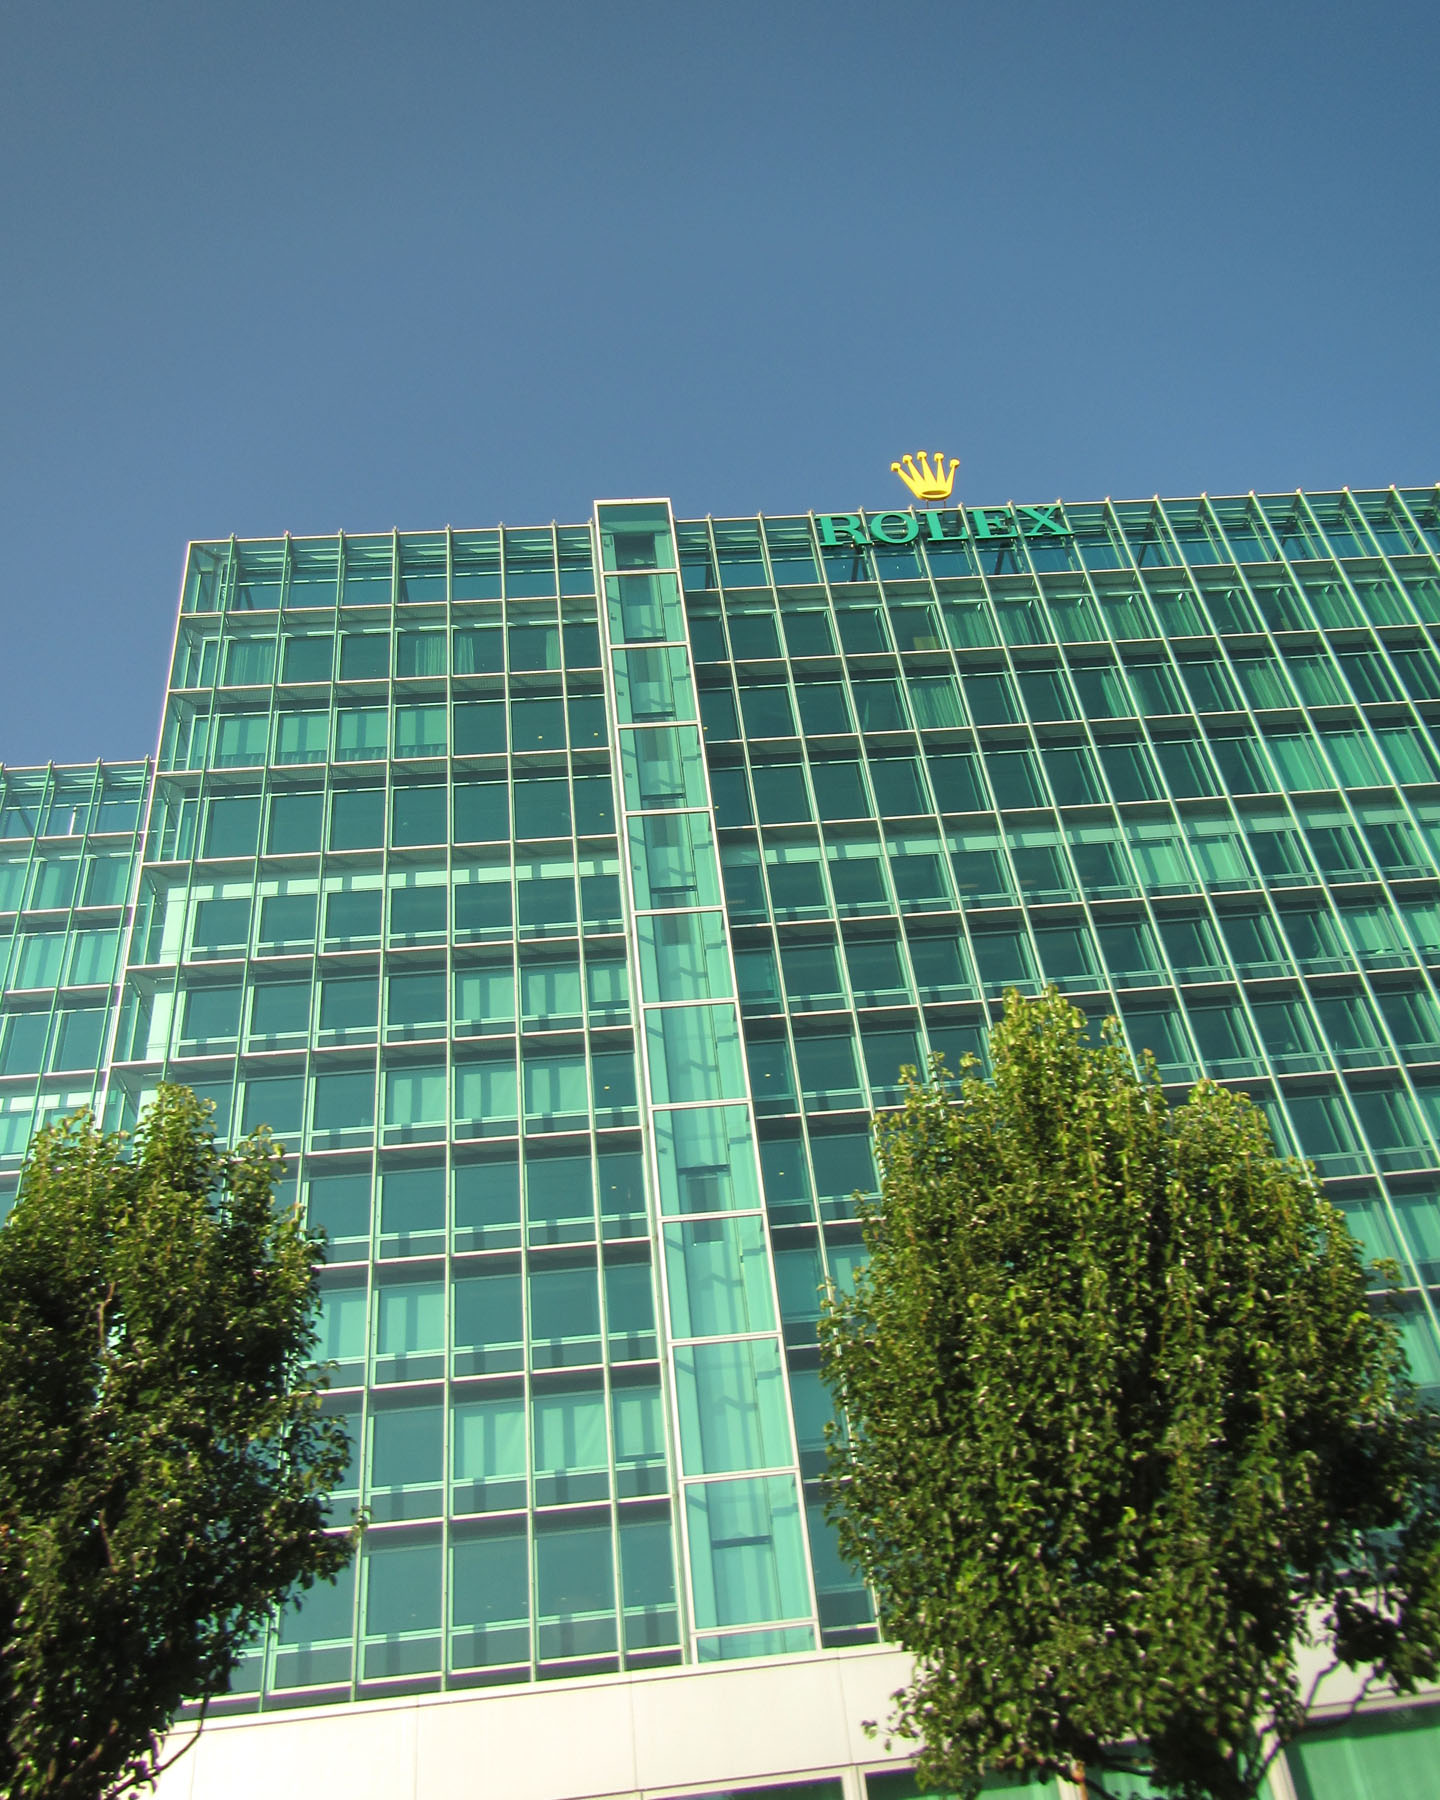 Rolex World Headquarters, Geneva Switzerland, 2015